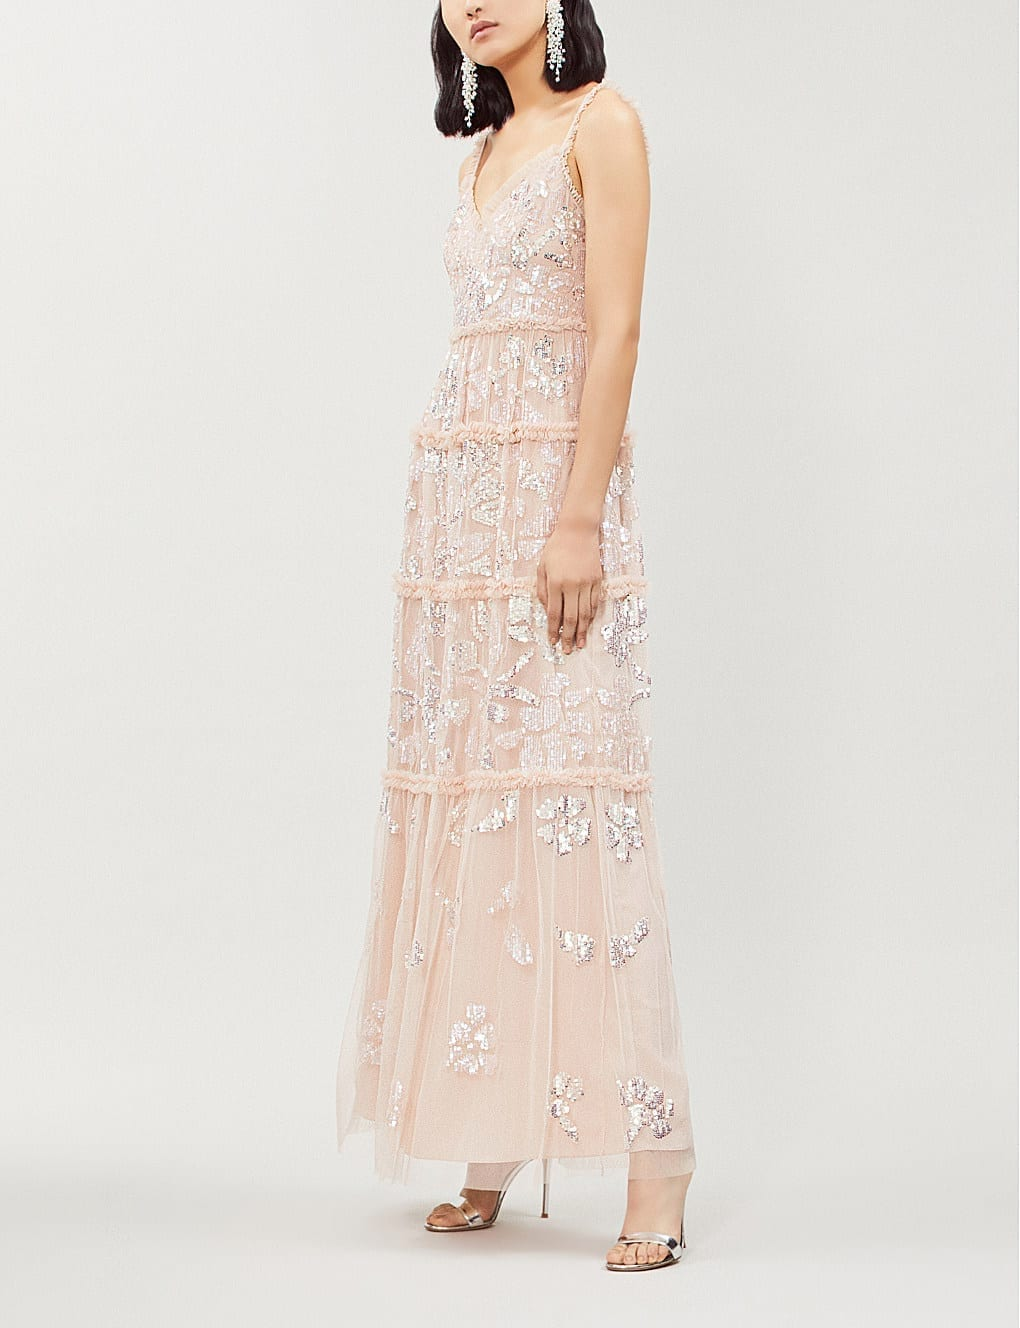 5ecd506618 NEEDLE AND THREAD Floral Gloss Embellished Tulle Maxi Rose Dress